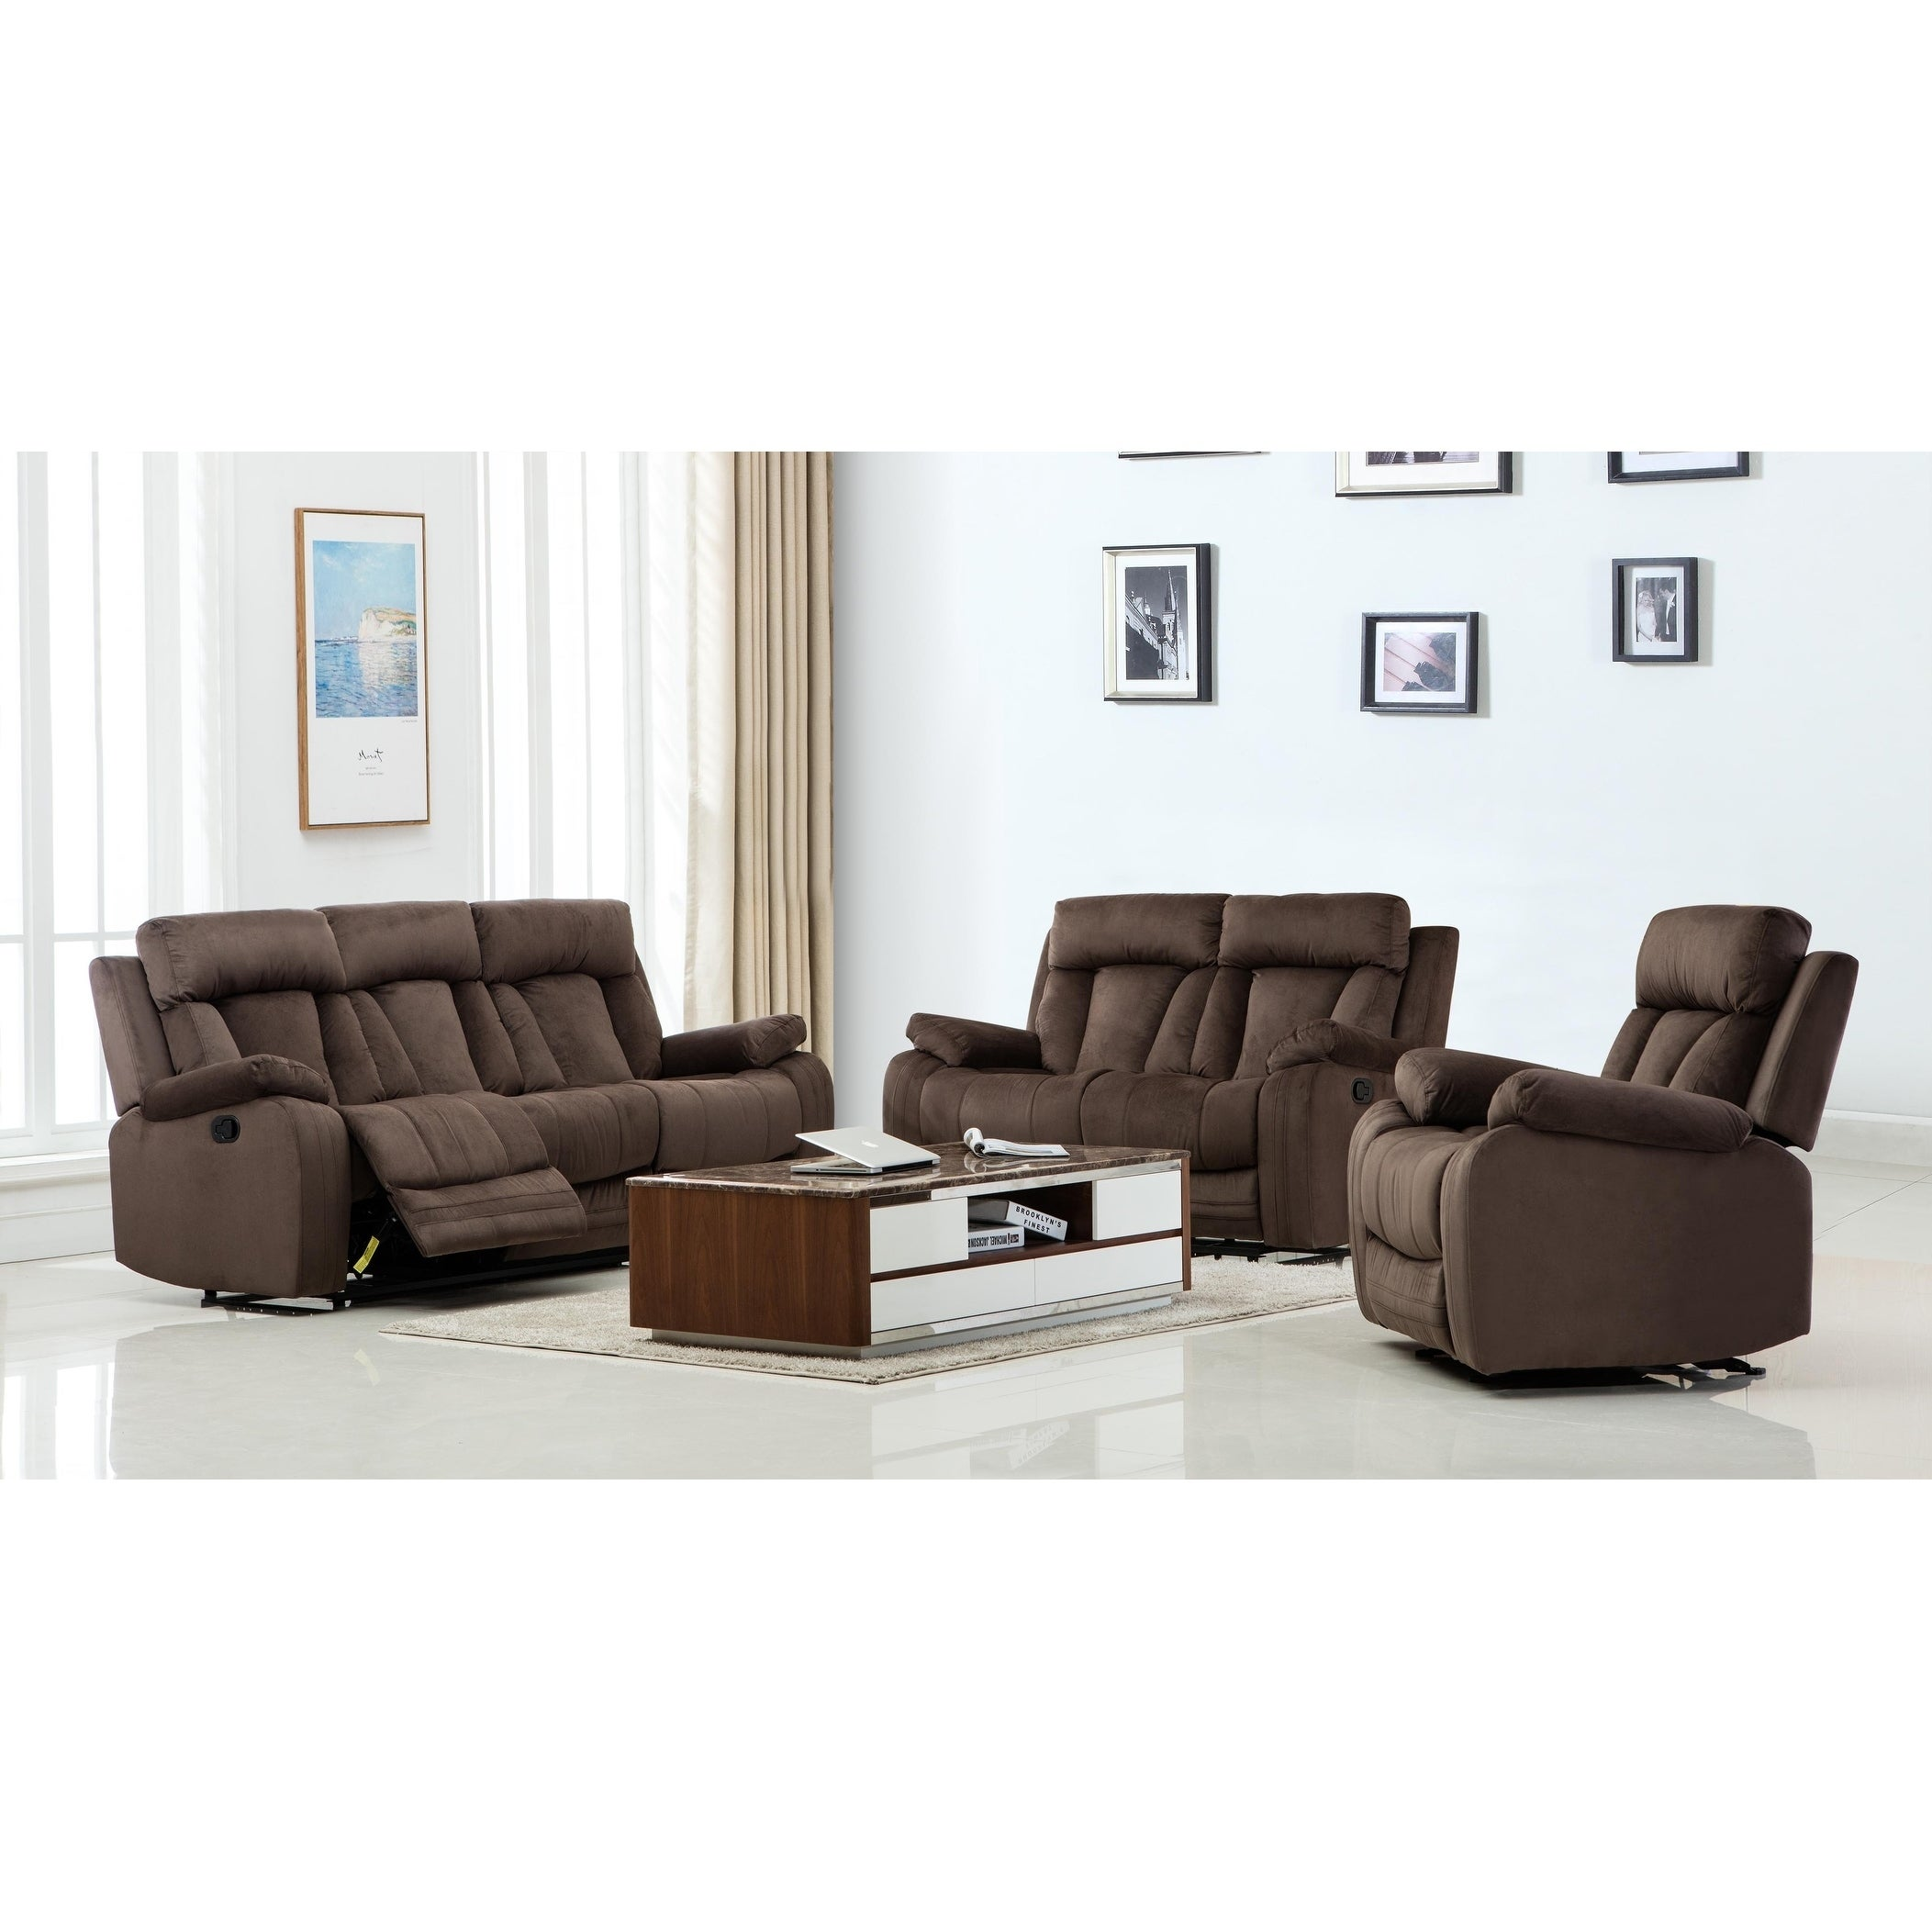 GU Industries Microfiber Fabric Upholstered 3-Piece Living Room ...